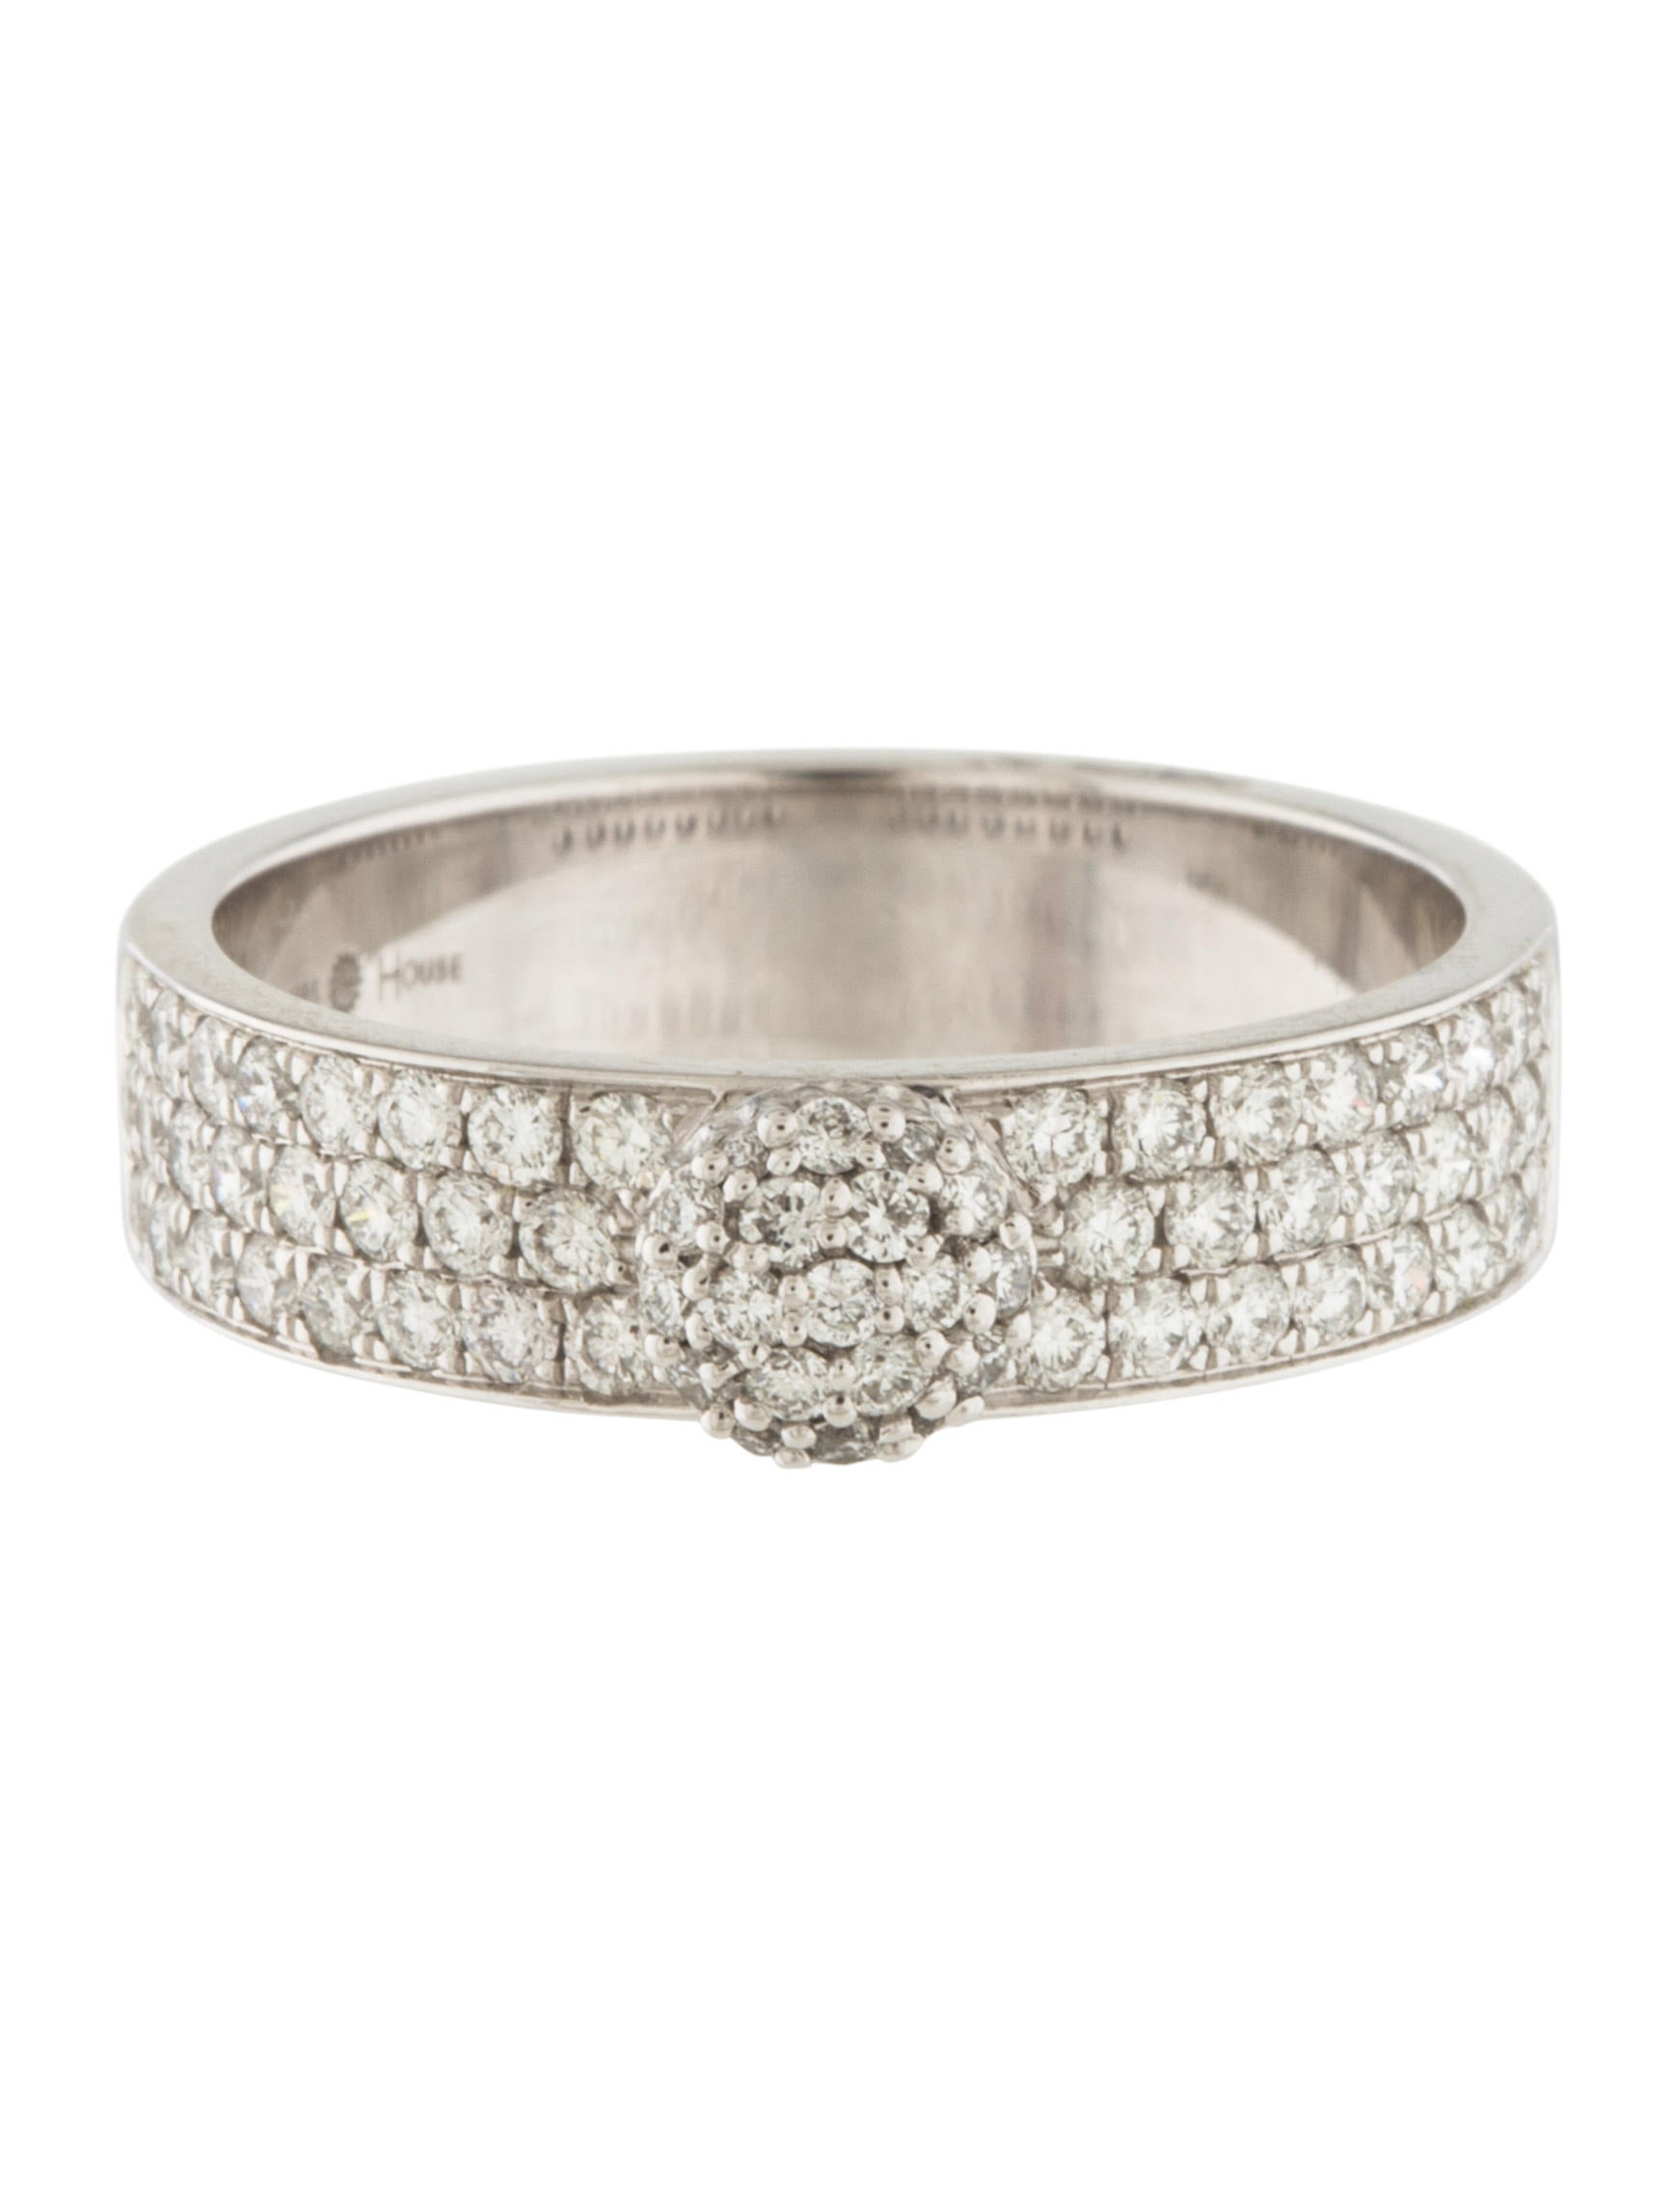 Phillips house 14k diamond infinity affair stack ring for Infinity ring jewelry store